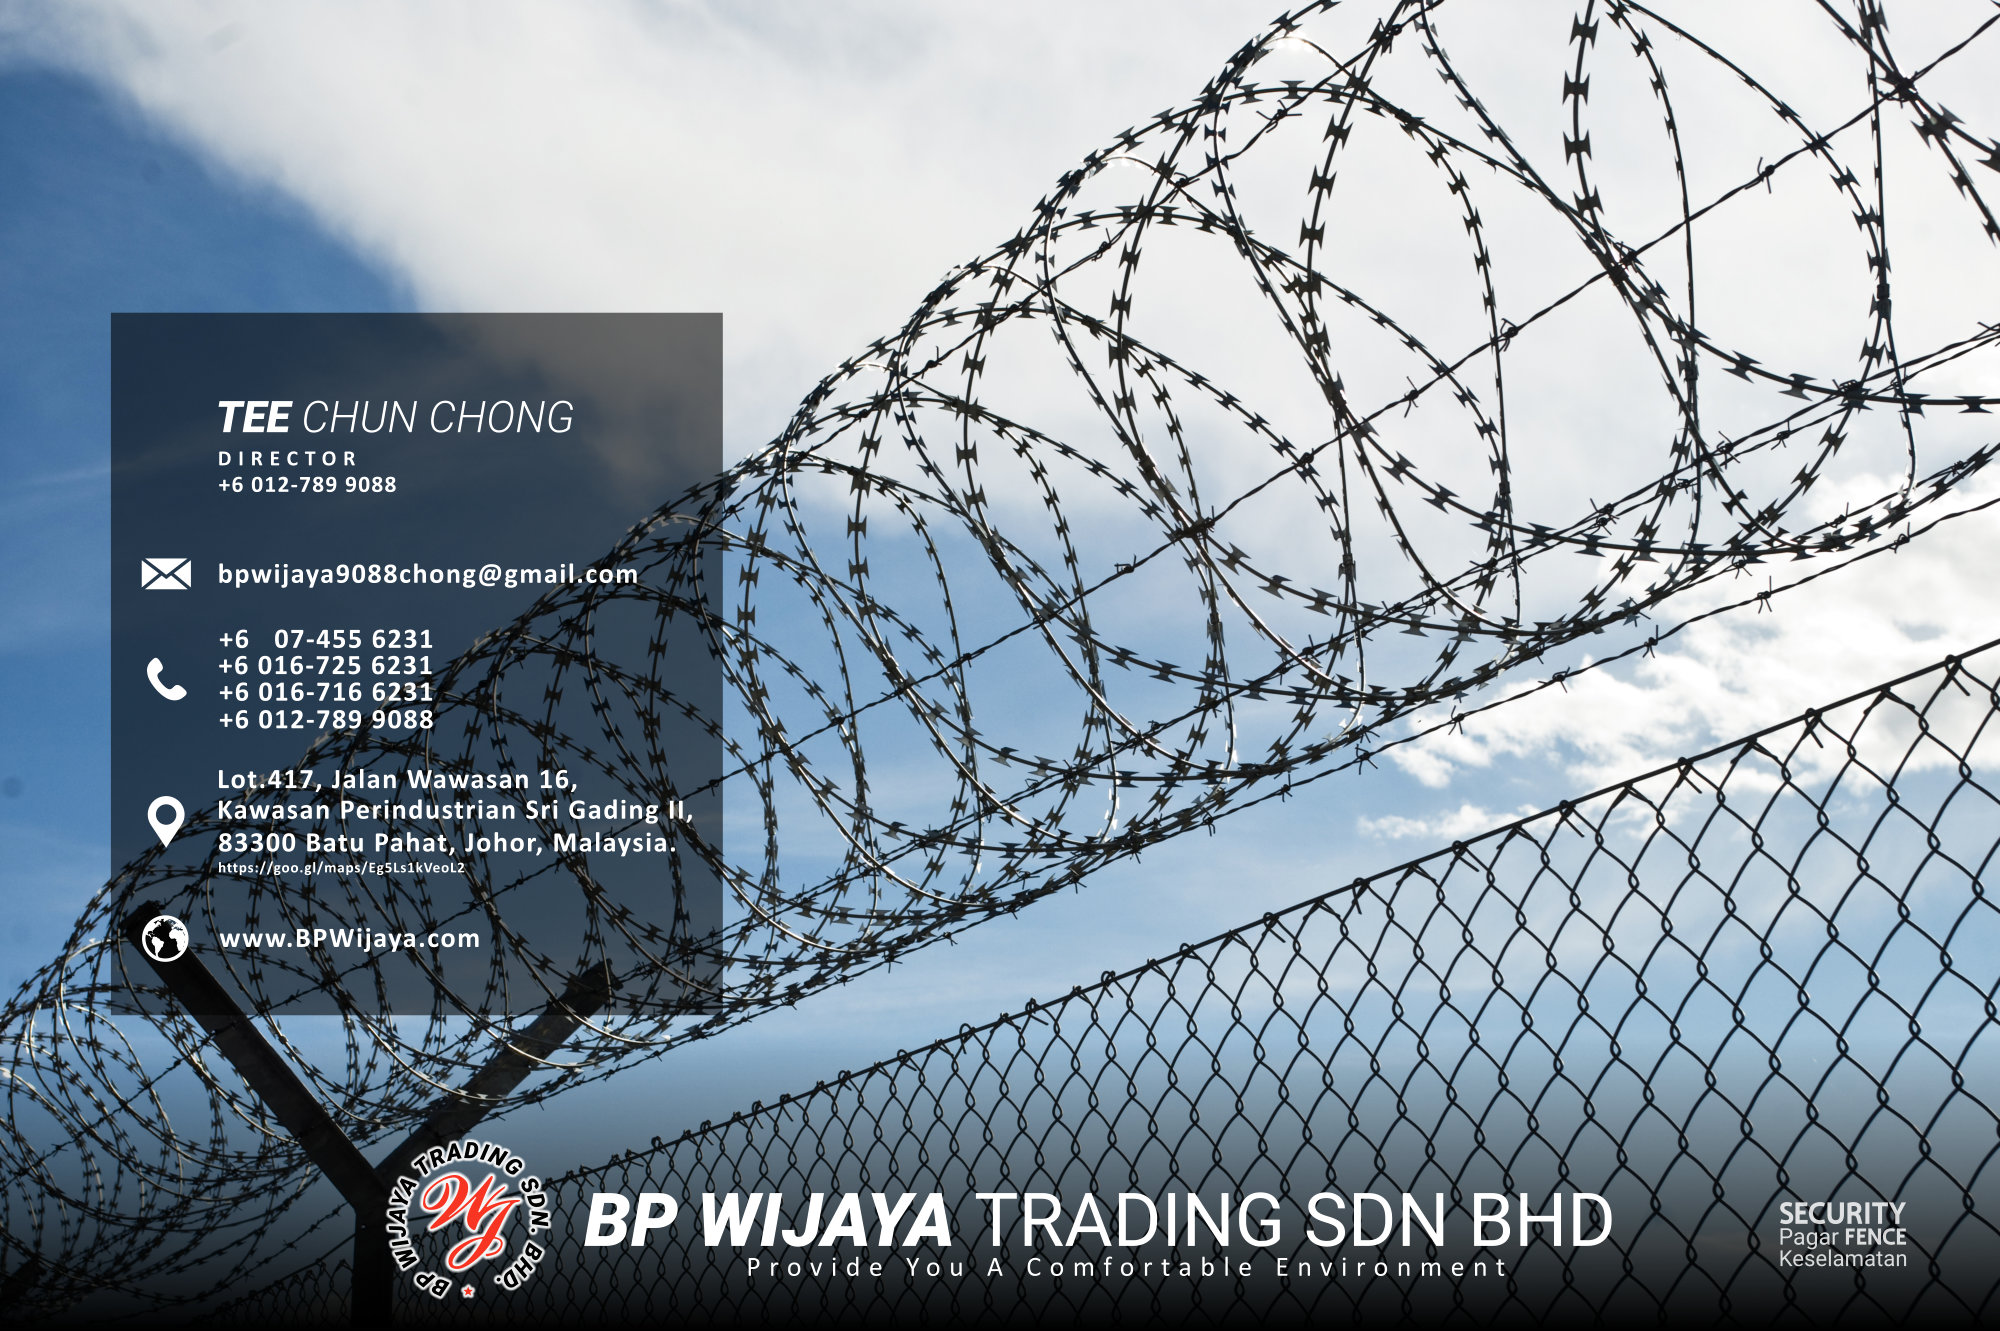 Kuala Lumpur Security Fence Supply we are manufacturer of security fence BP Wijaya Trading Sdn Bhd Safety Fence Building Materials for Housing Construction factory fence house beauty fence A03-003